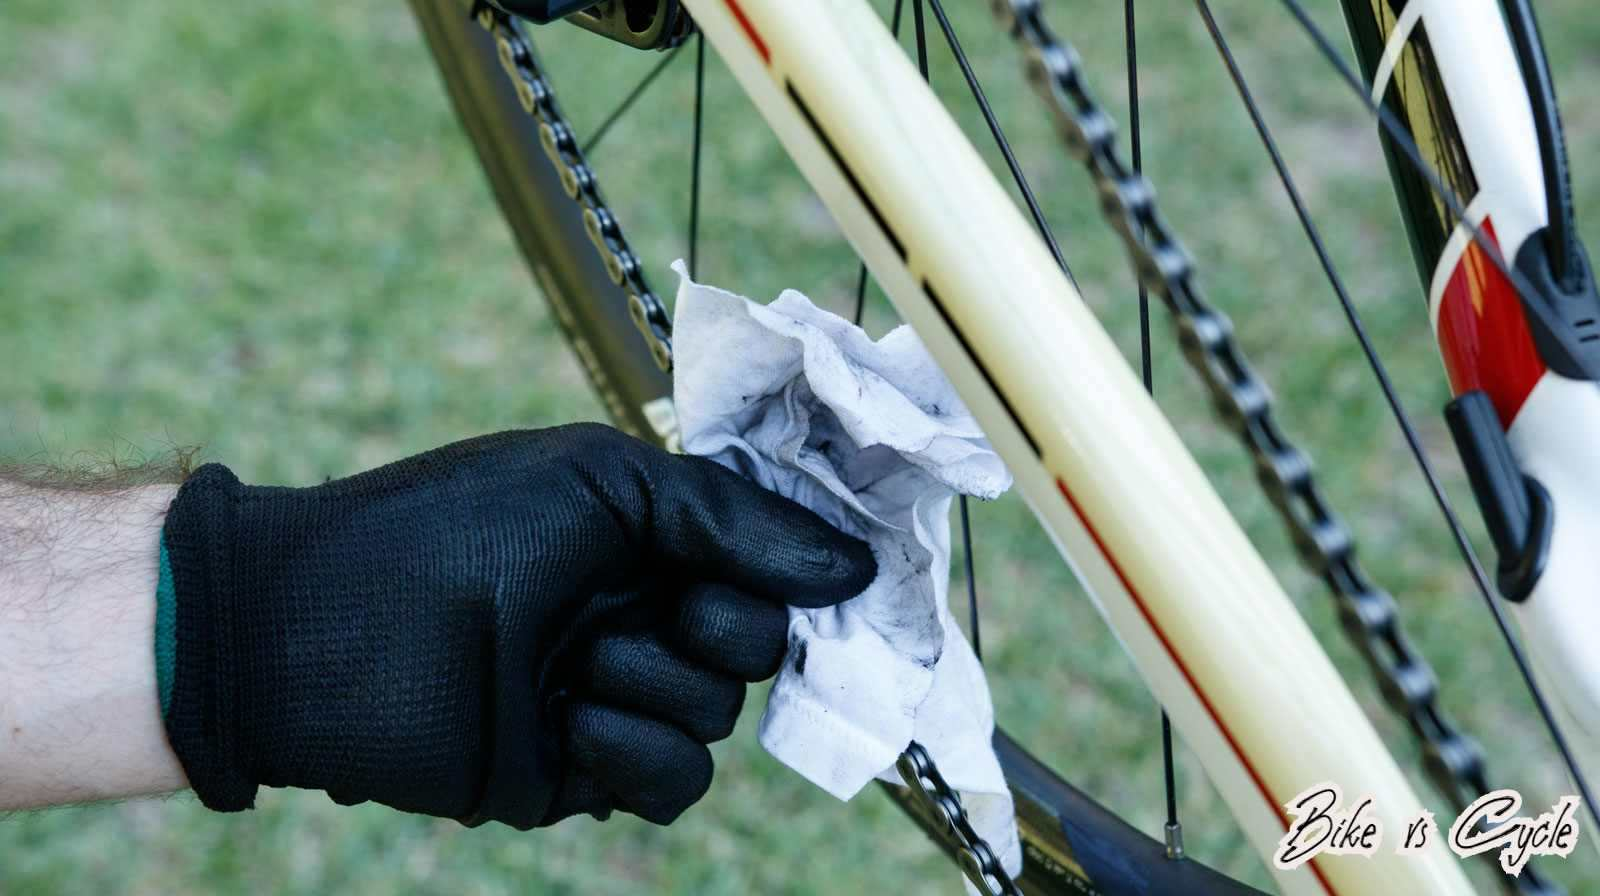 """Rags"" How to Oil a Bike Chain"